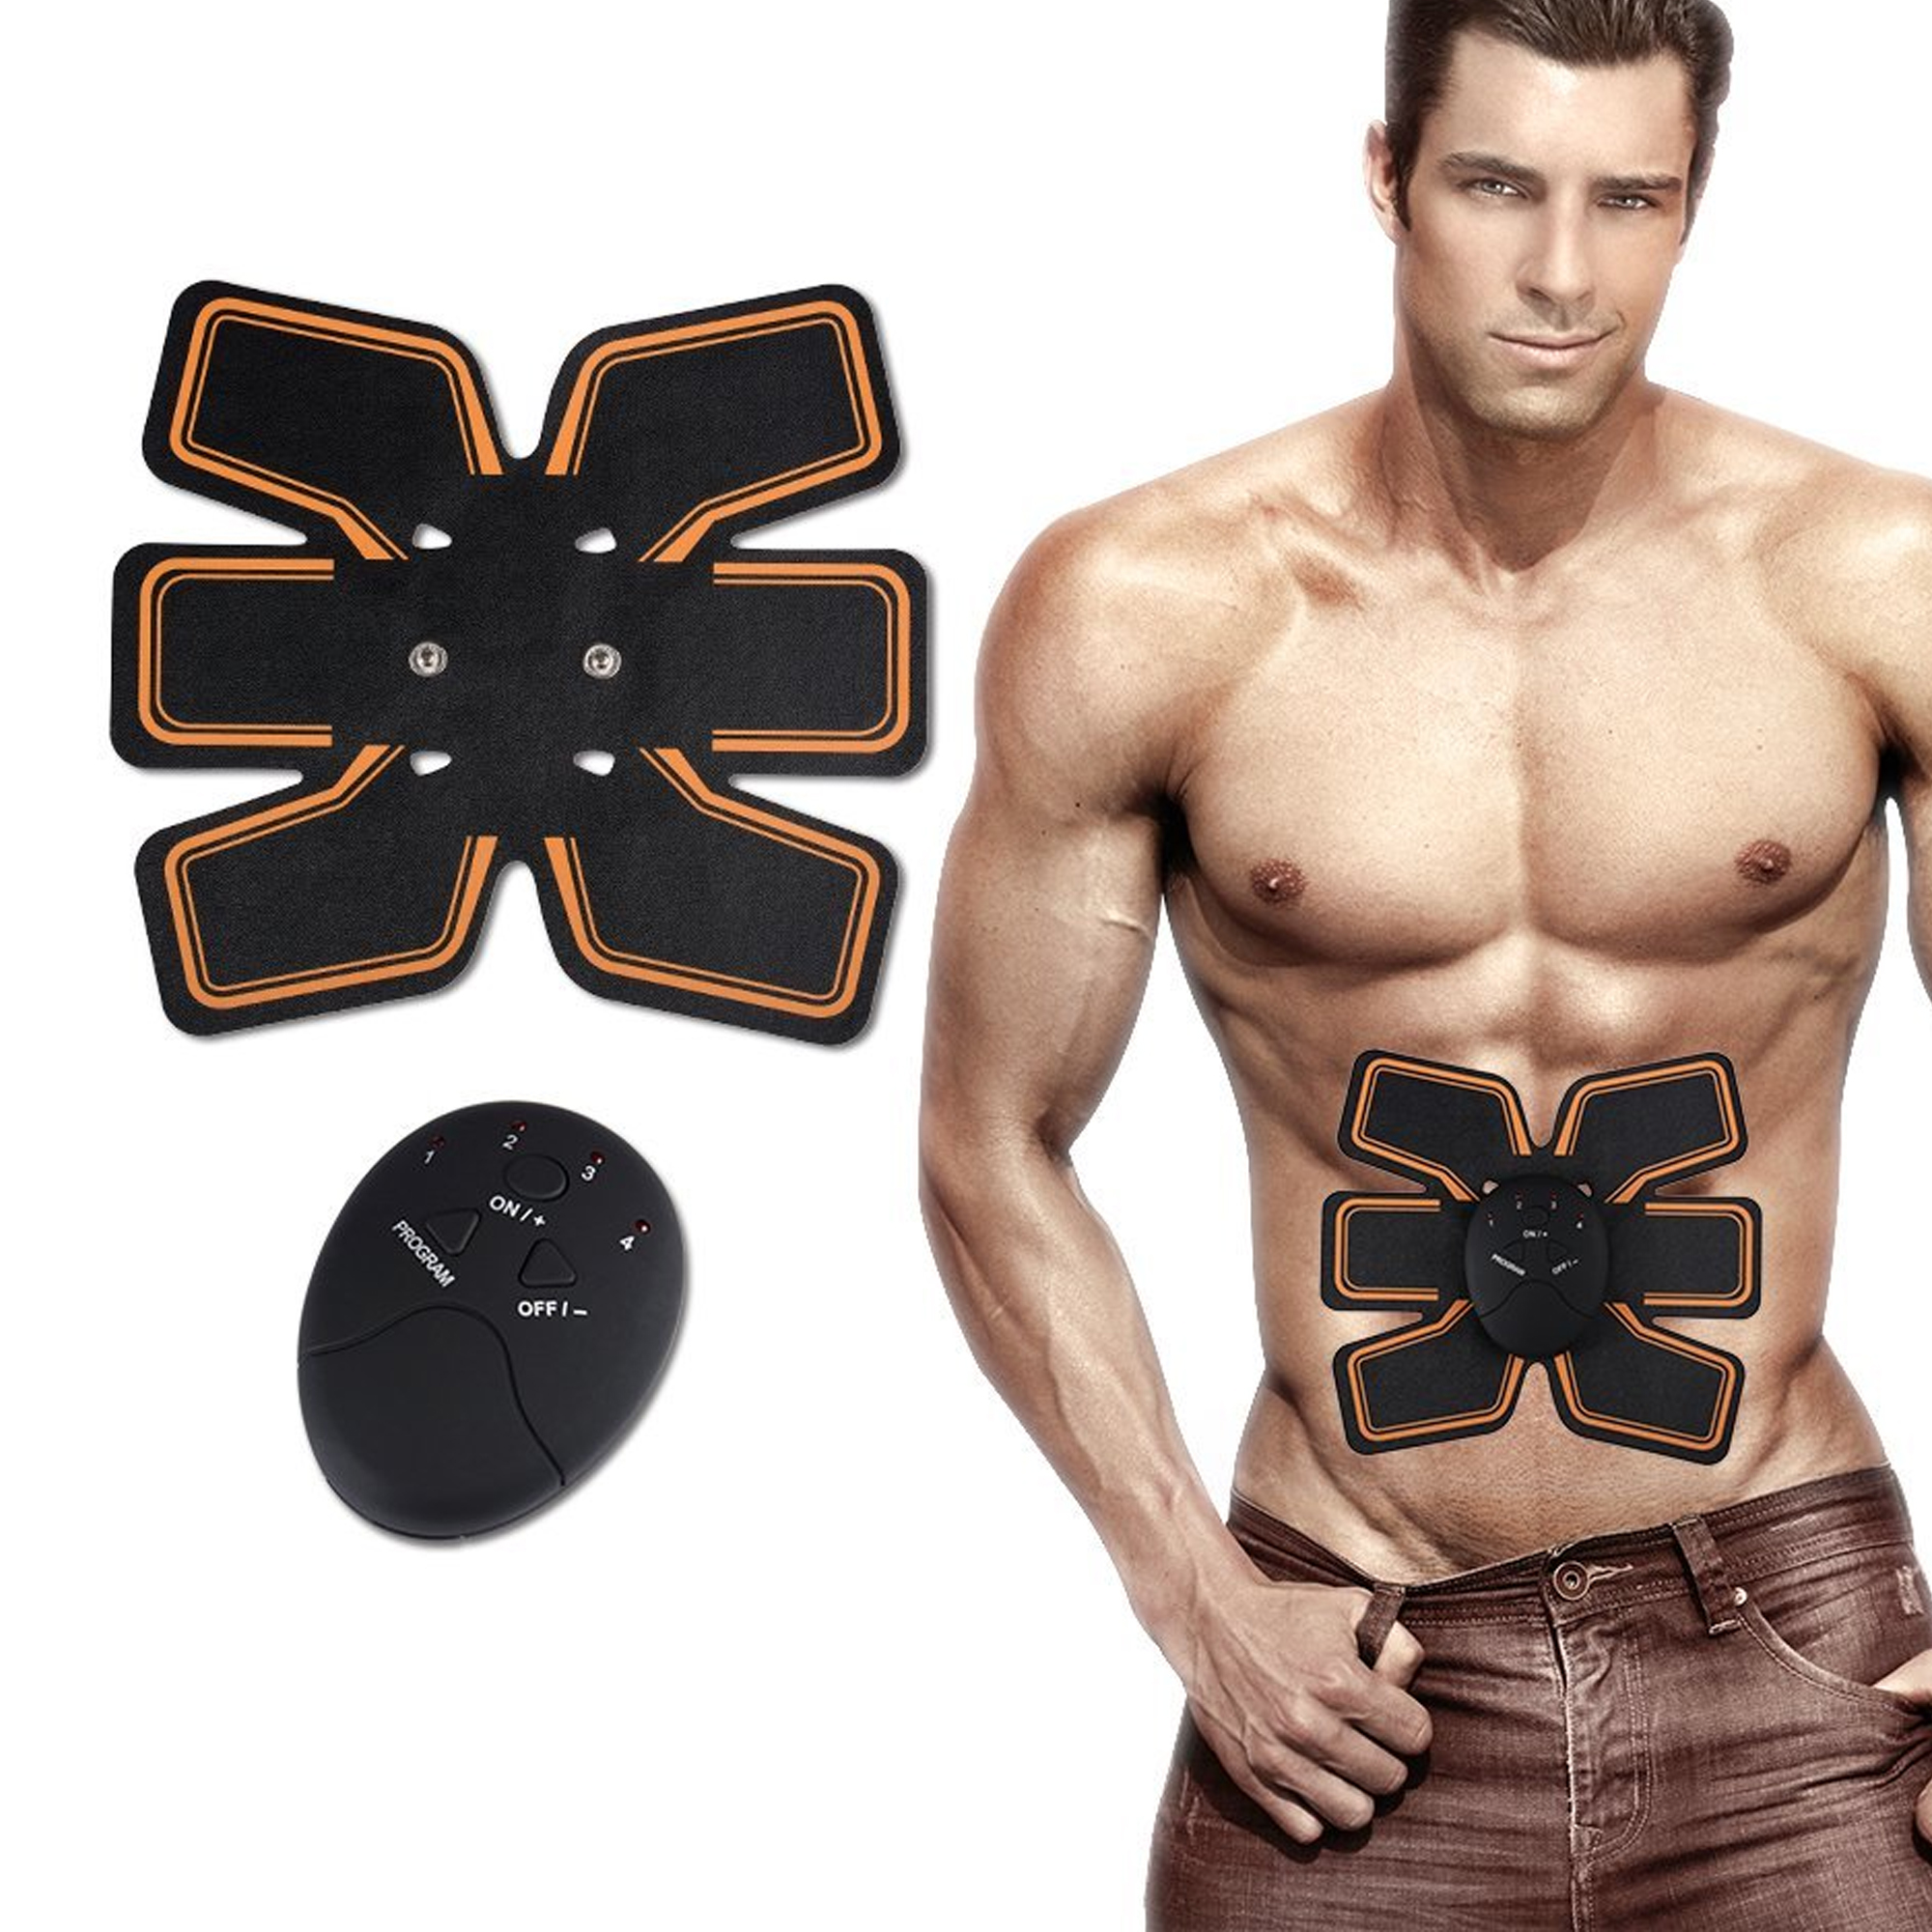 Portable Unisex Fitness Muscle Training Gear, EMS Abs Stimulator Ab Toner Muscle Toner Trainer Abdominal Toning Belt for Abdomen Support Men Women